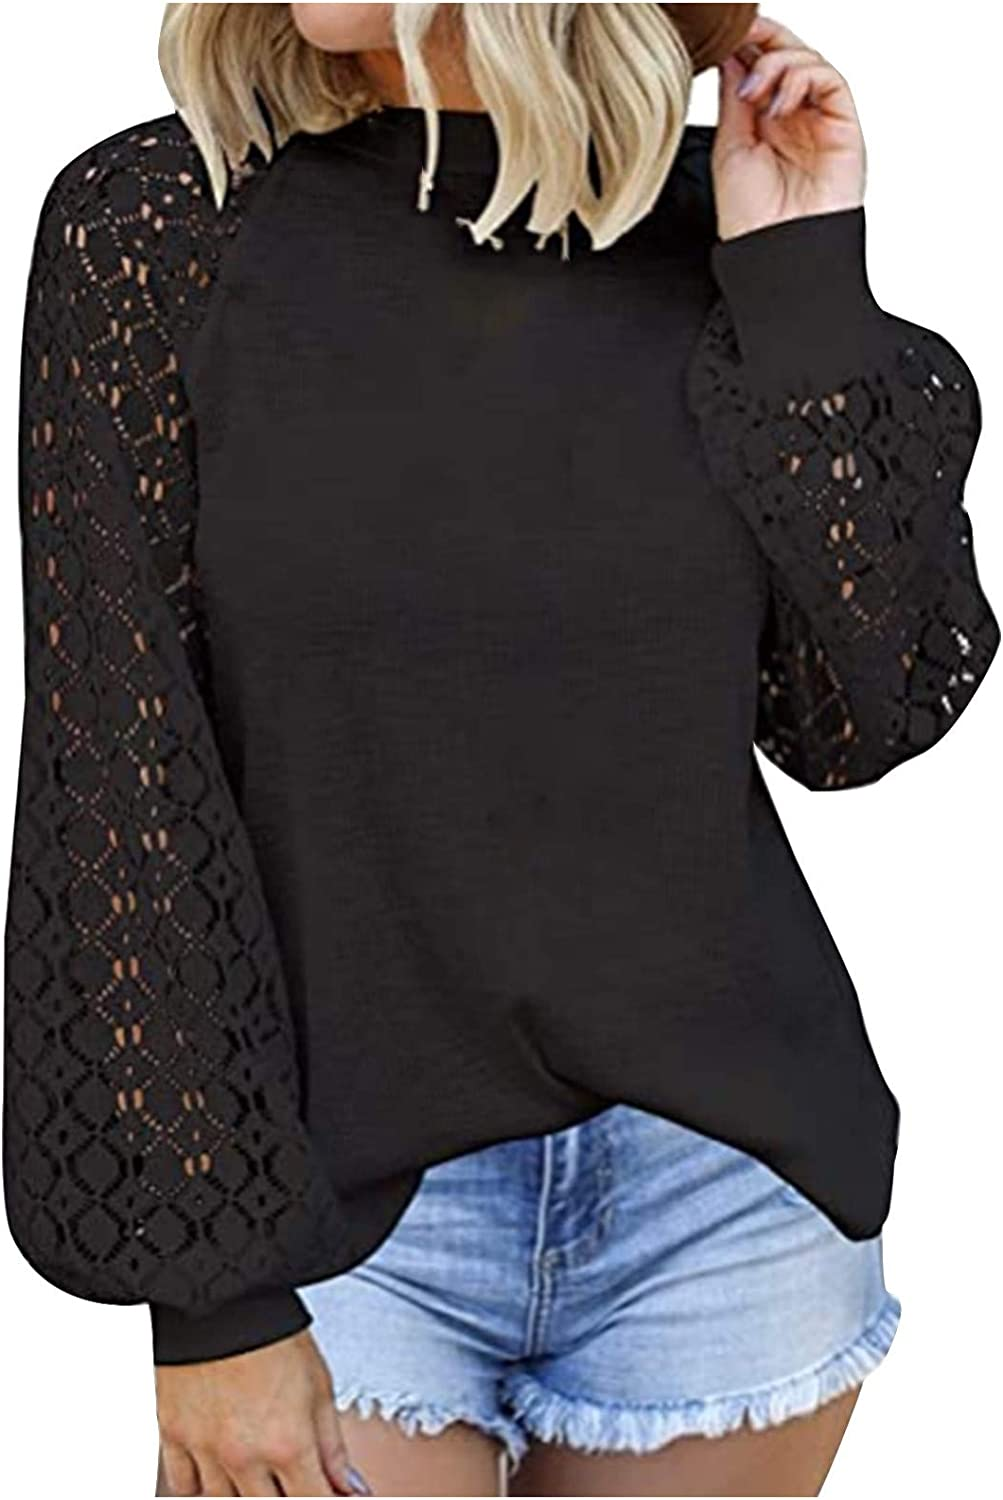 Women's Long Sleeve Tops Lace Blouses Casual Special Campaign Loose outlet T Shirts